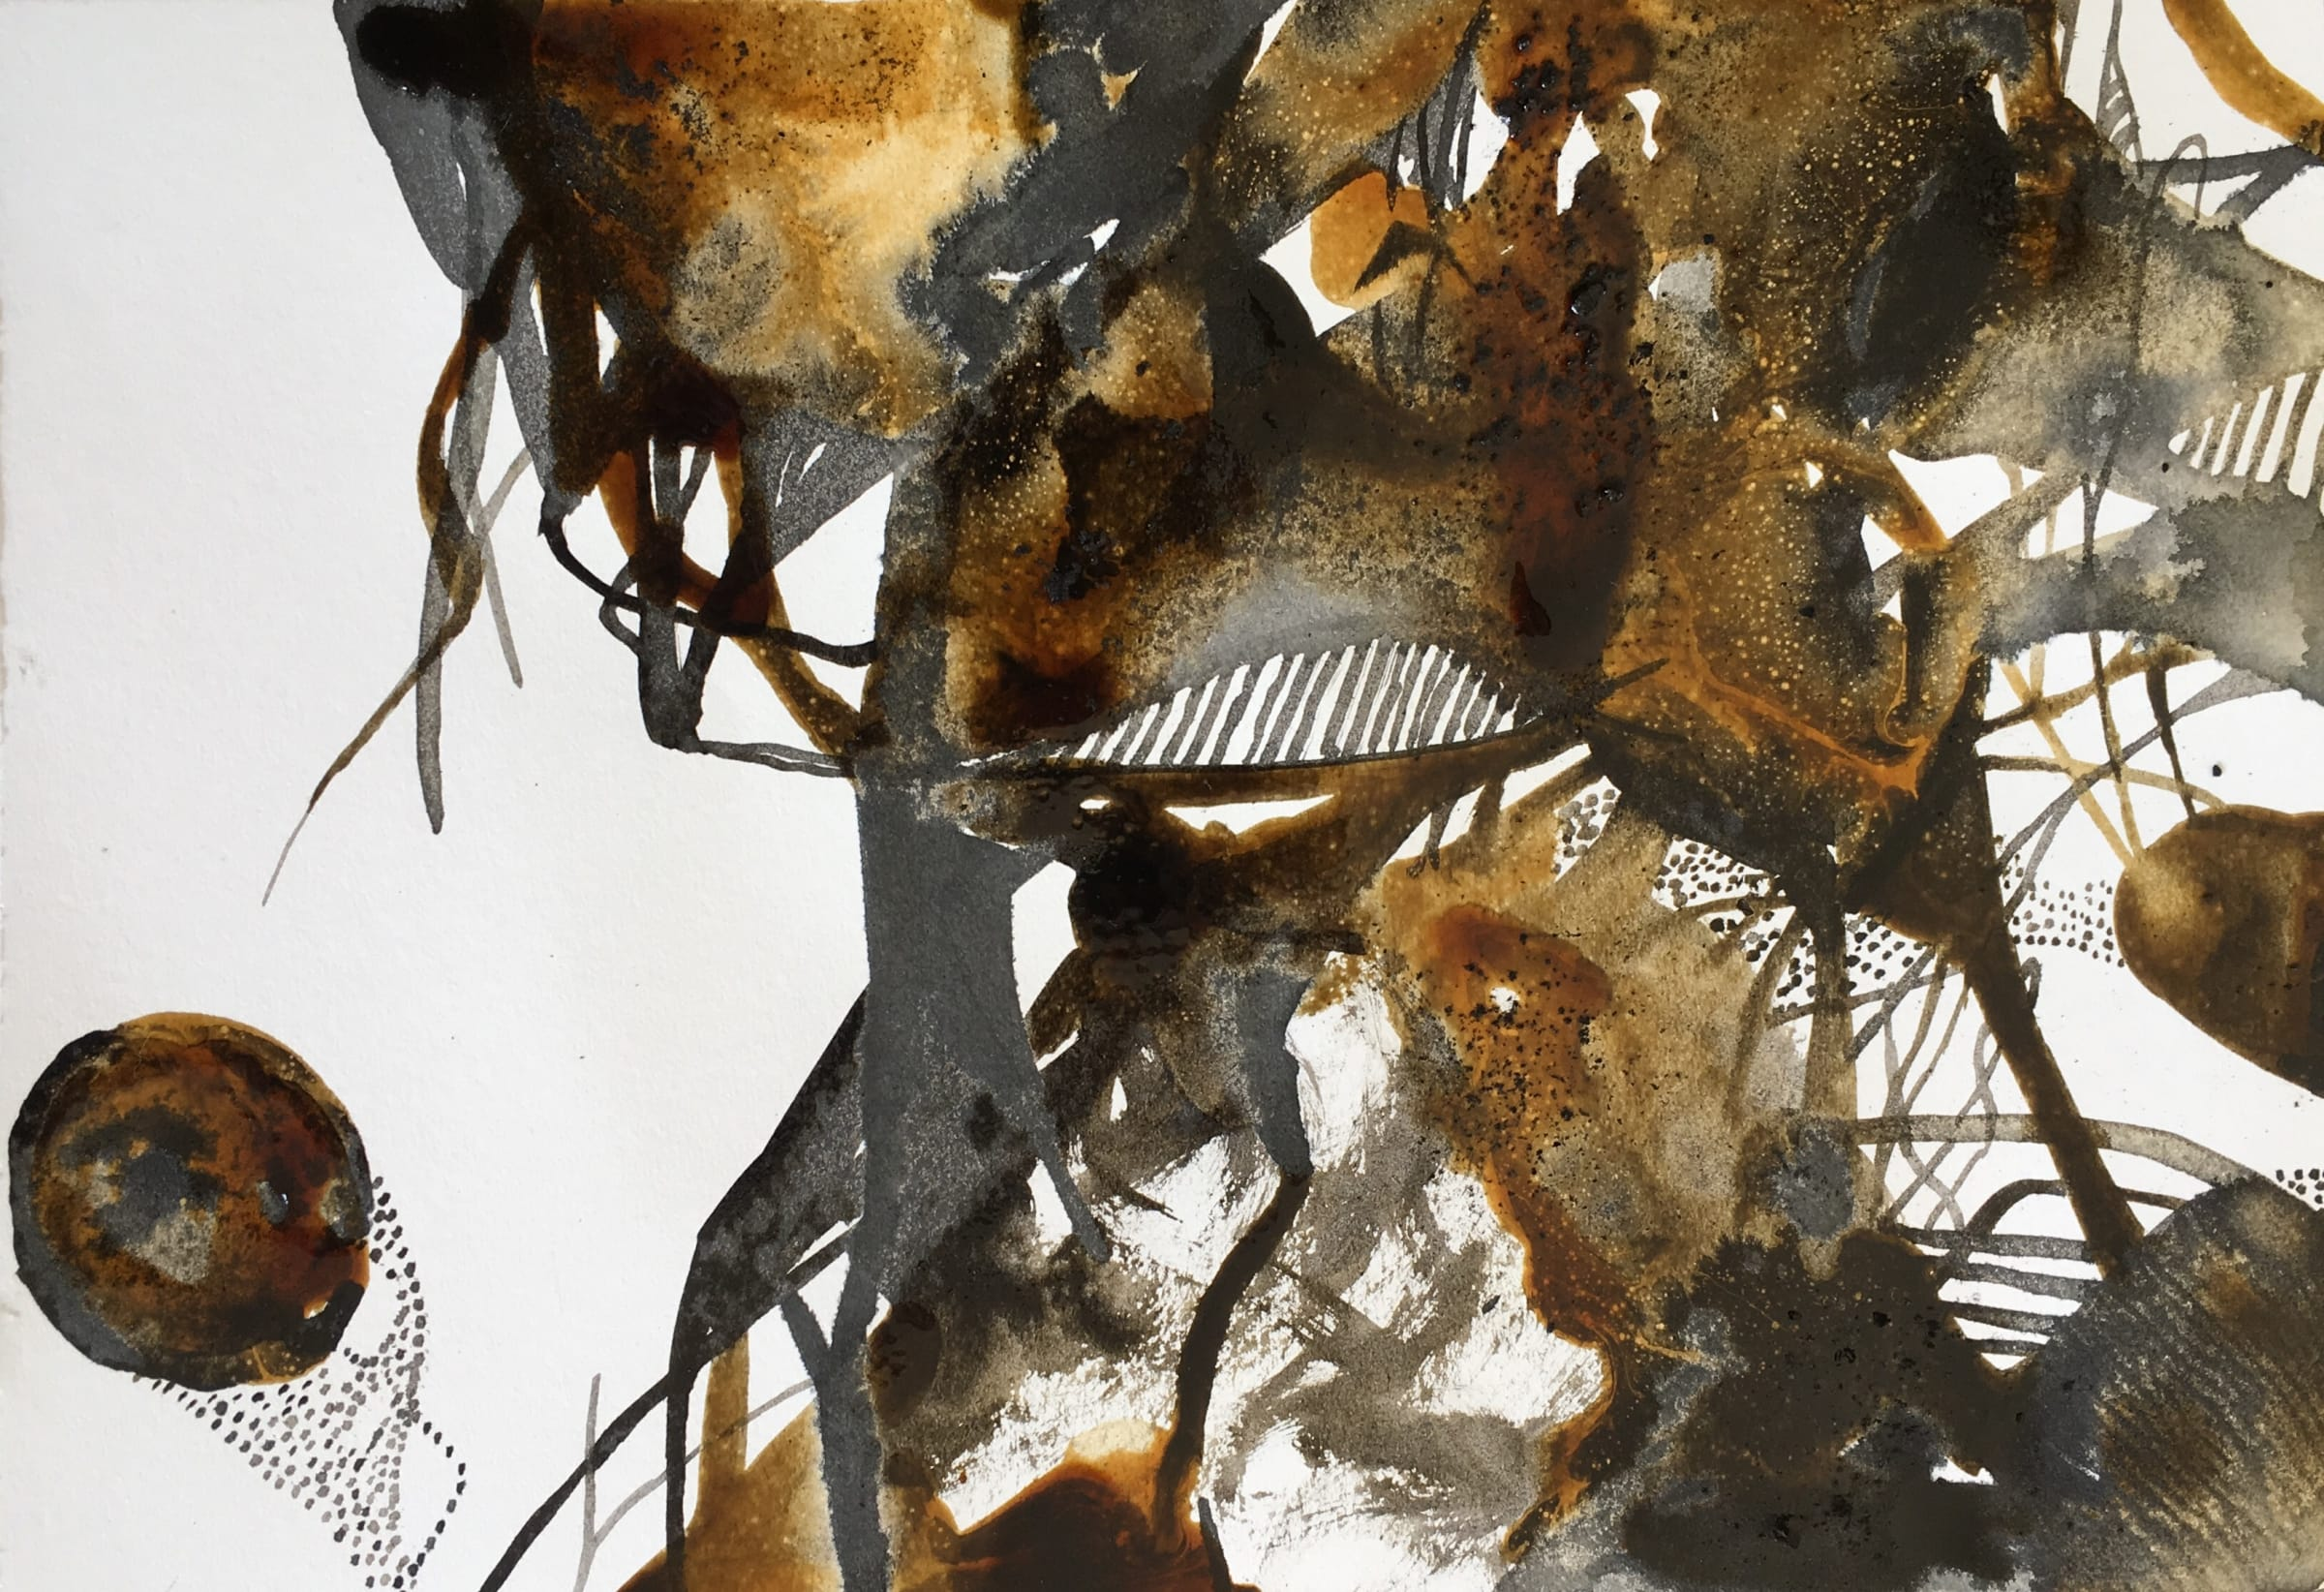 <span class=&#34;link fancybox-details-link&#34;><a href=&#34;/artists/51-kyra-pape/works/2763-kyra-pape-experimentation-series-1-inkt1825-2018/&#34;>View Detail Page</a></span><div class=&#34;artist&#34;><strong>Kyra Pape</strong></div> <div class=&#34;title&#34;><em>Experimentation Series 1: Inkt1825</em>, 2018</div> <div class=&#34;medium&#34;>Ink & Melted Sugar On Paper</div> <div class=&#34;dimensions&#34;>14.8cm x 21cm</div><div class=&#34;price&#34;>R400.00</div>